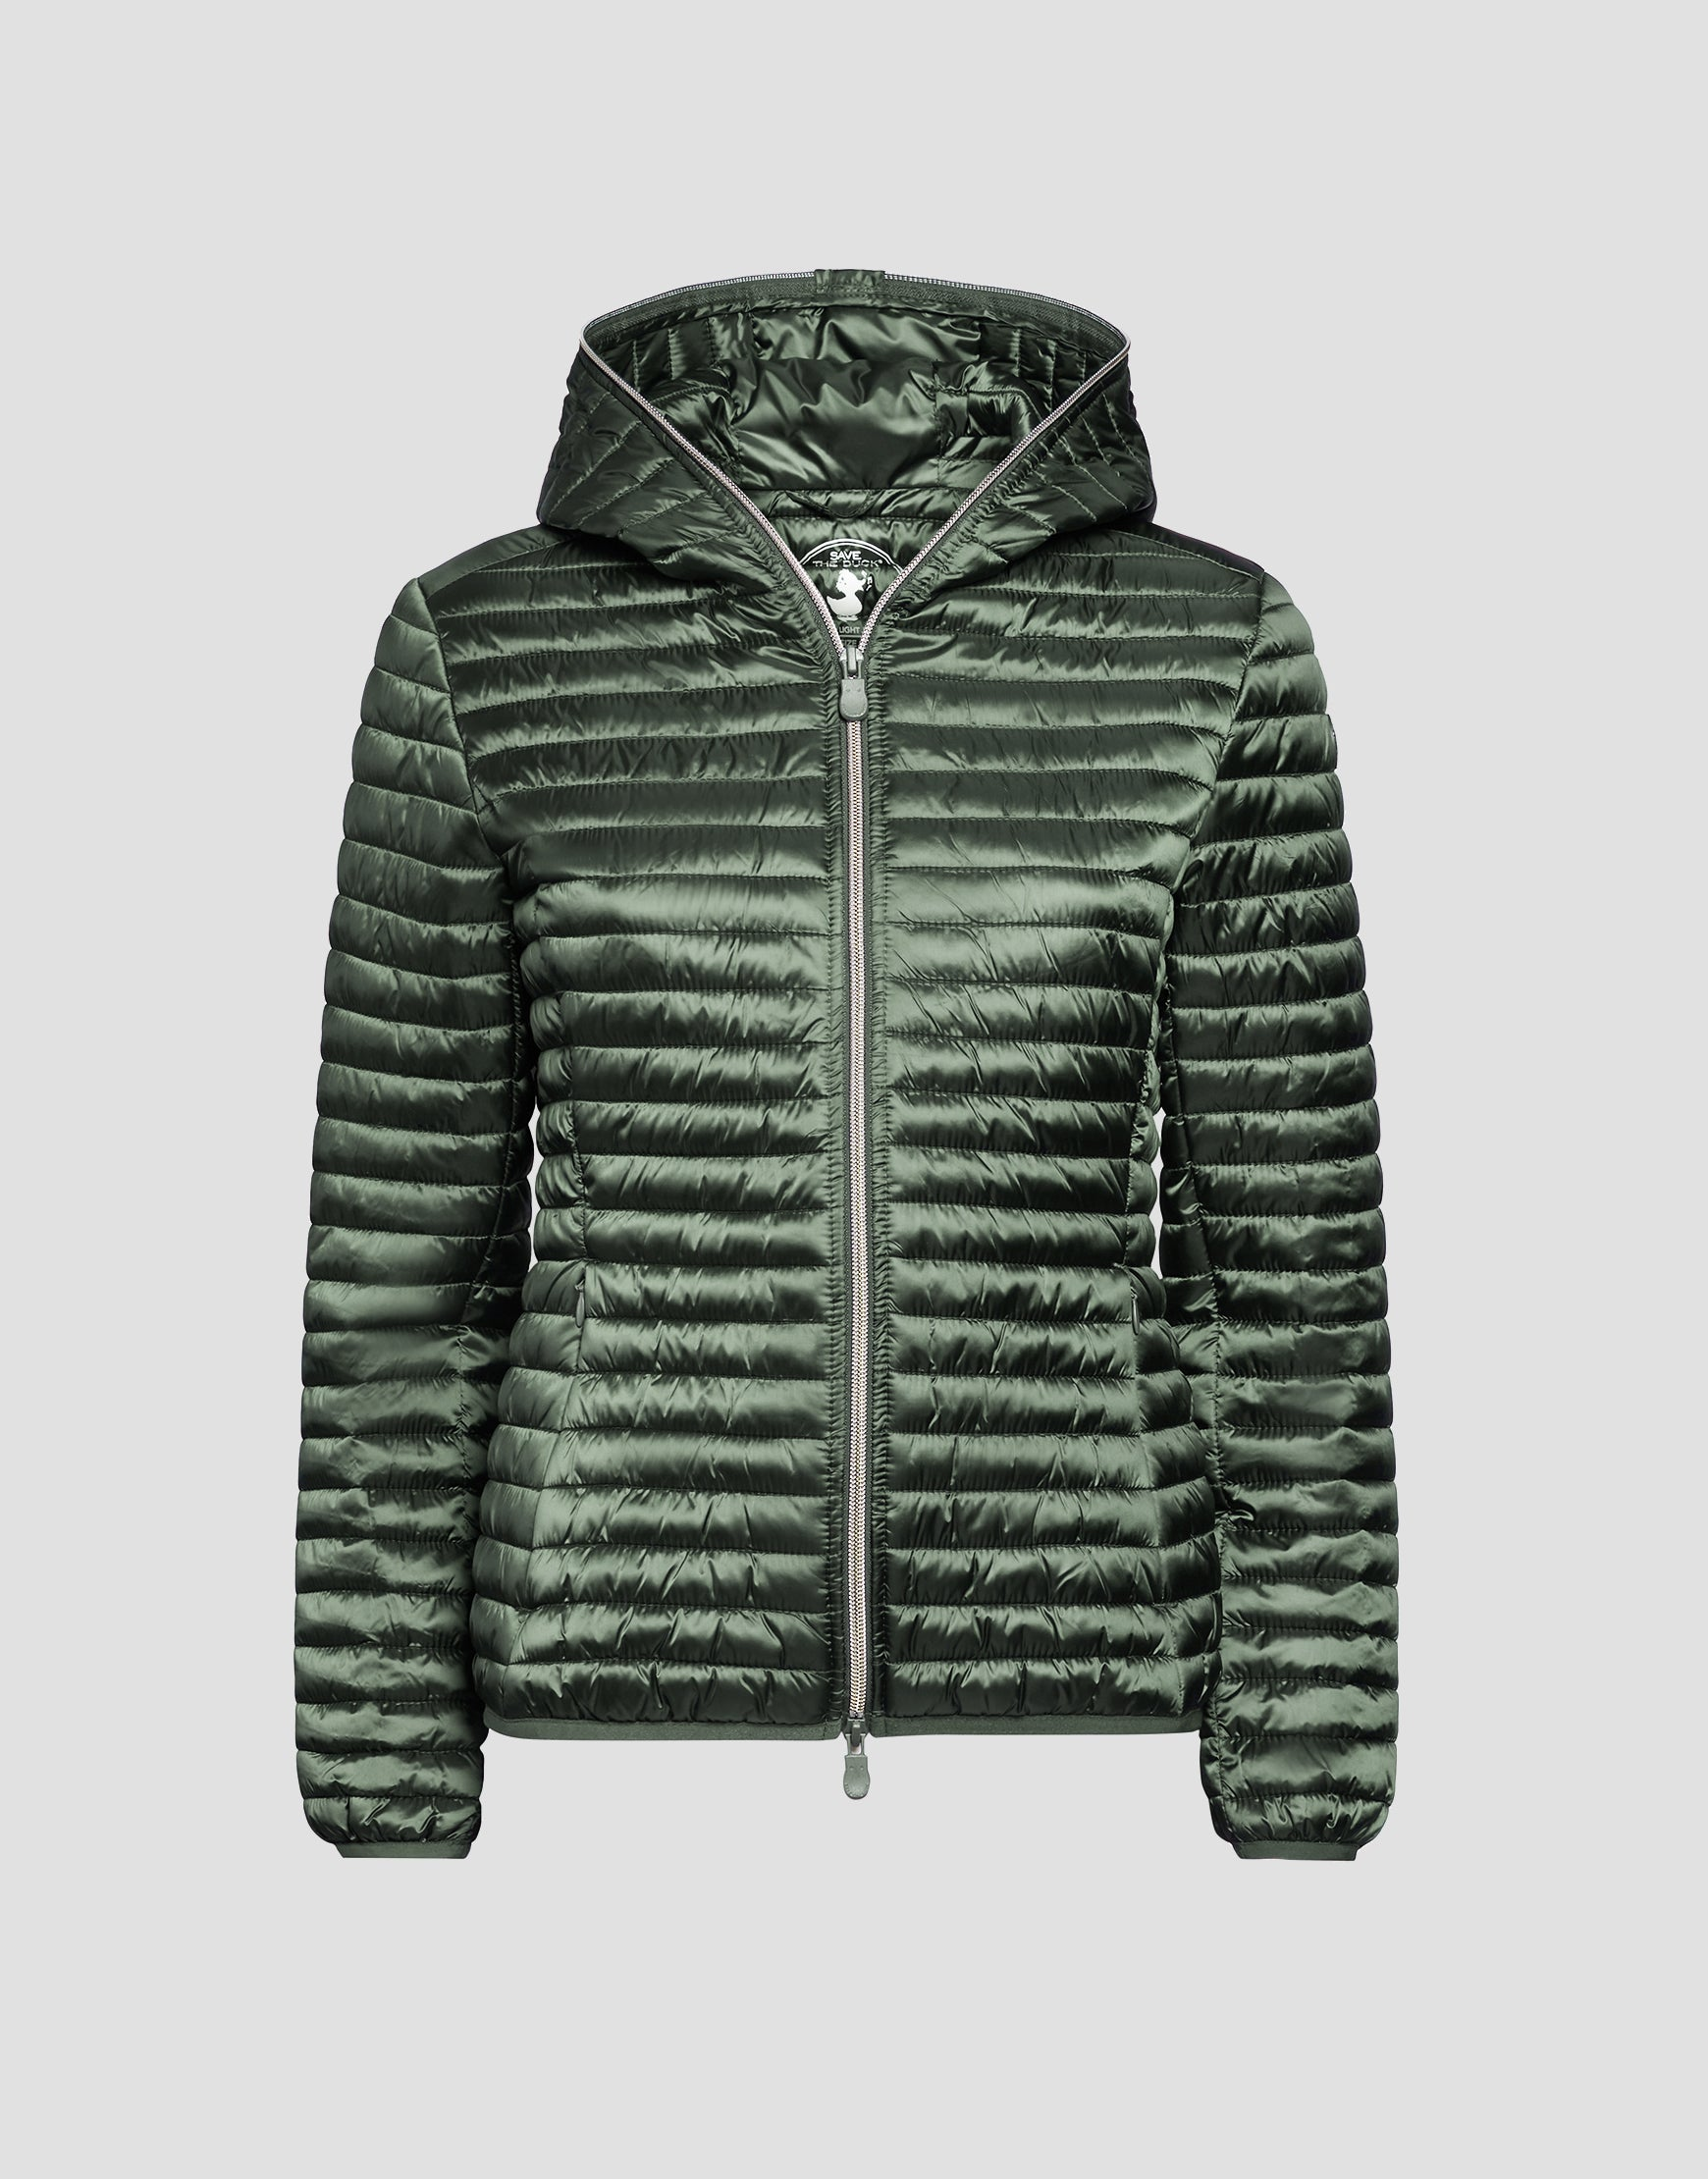 960ba40dd Womens IRIS Hooded Puffer Jacket in Cactus Green